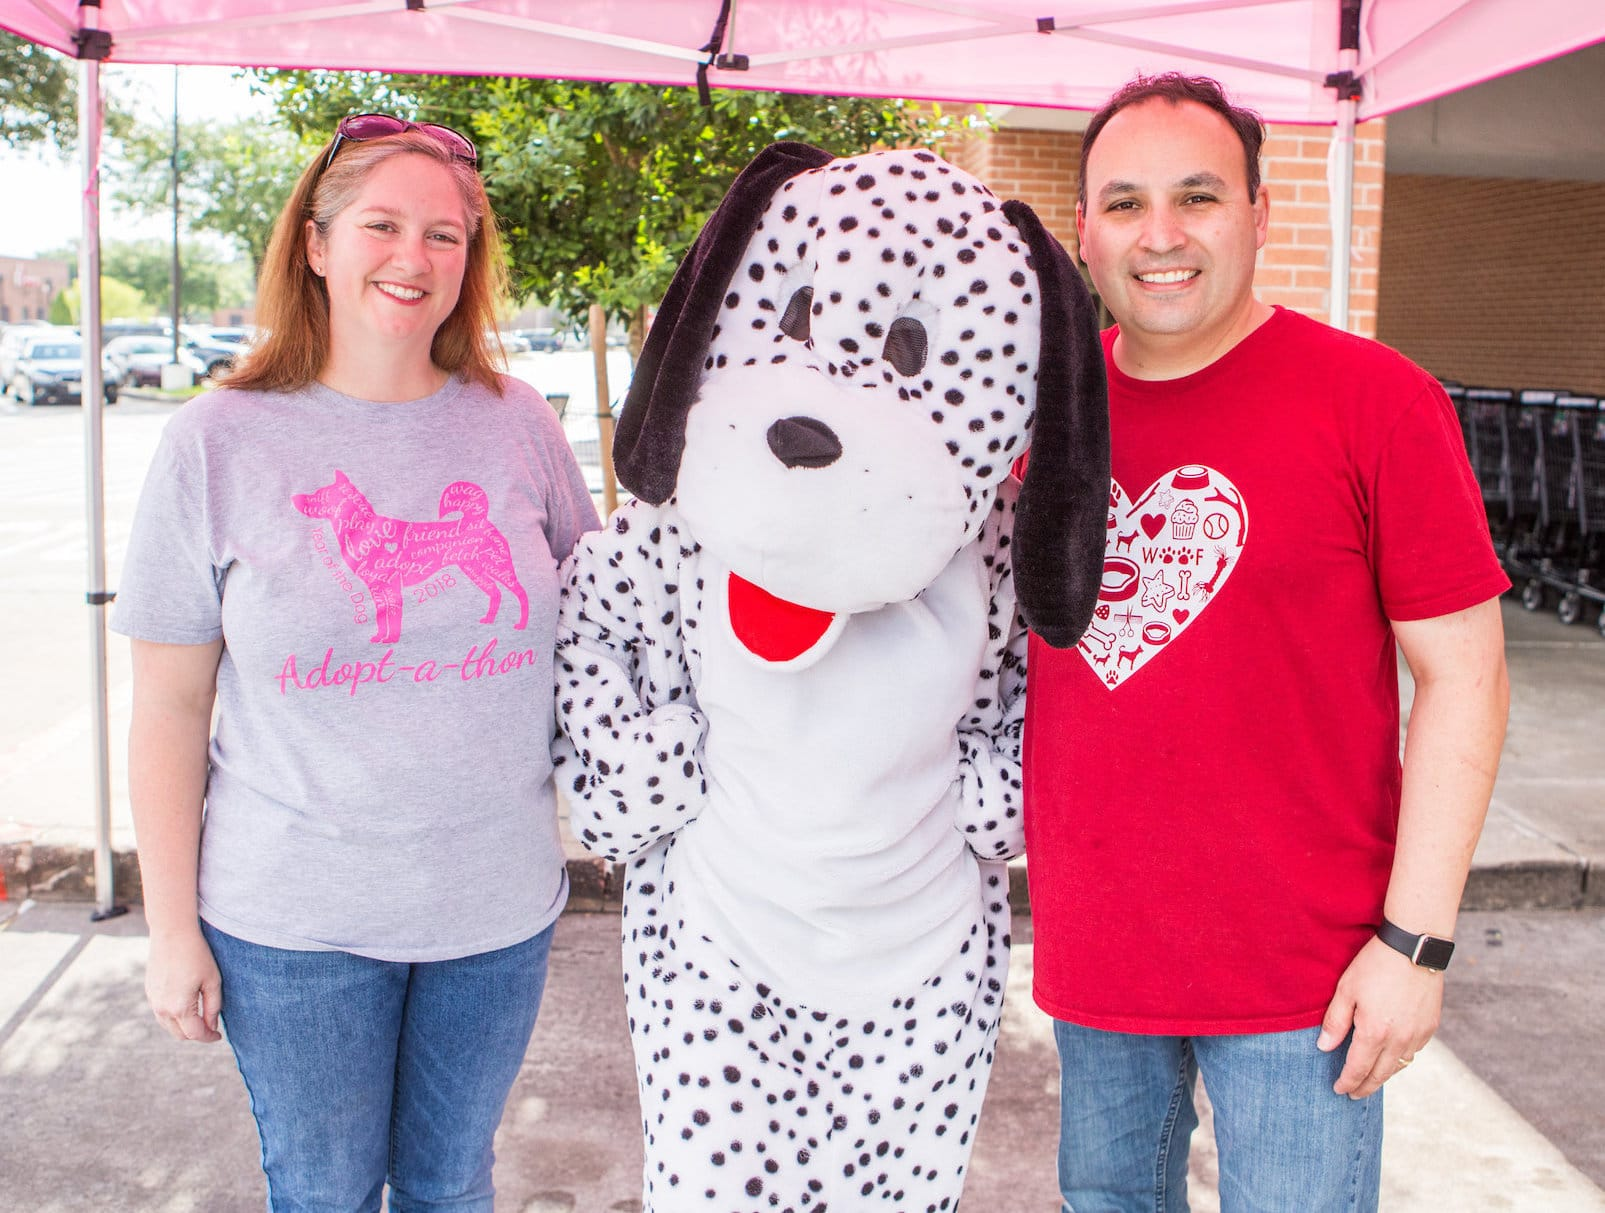 Woof Gang Bakery franchisees with mascot